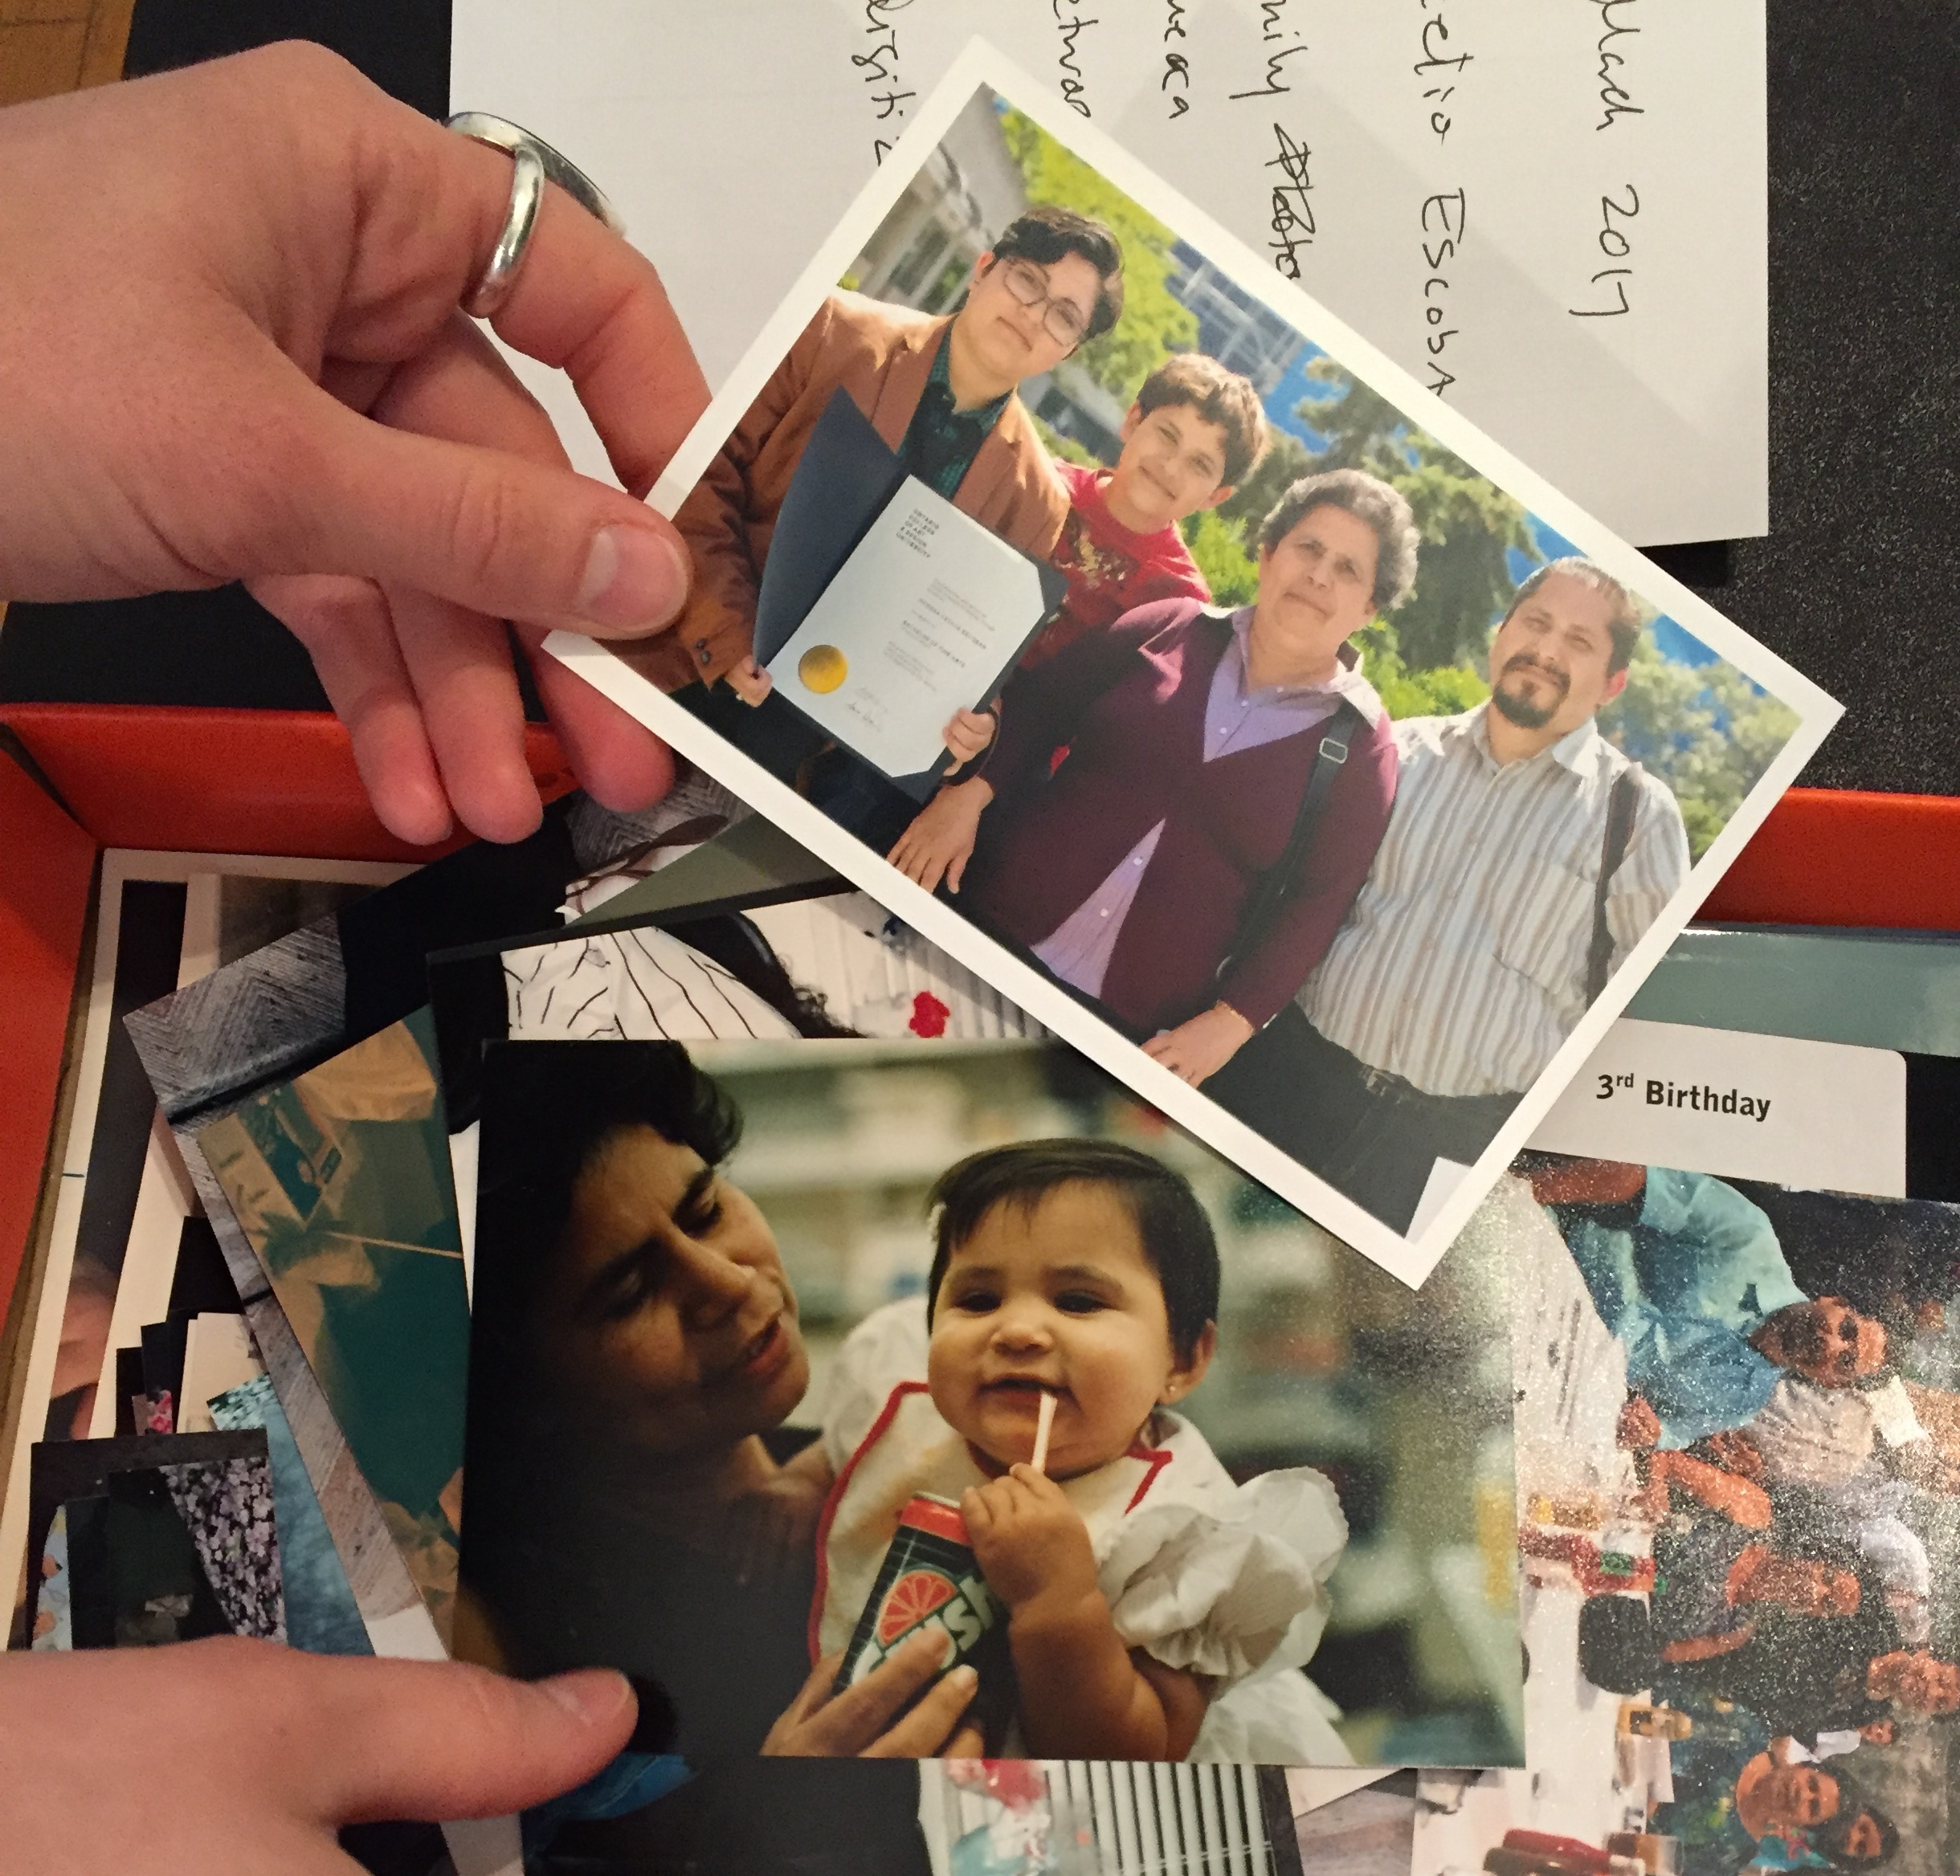 Photographs collected by The Family Camera Network at the CLGA (C. Barreto, 2017)